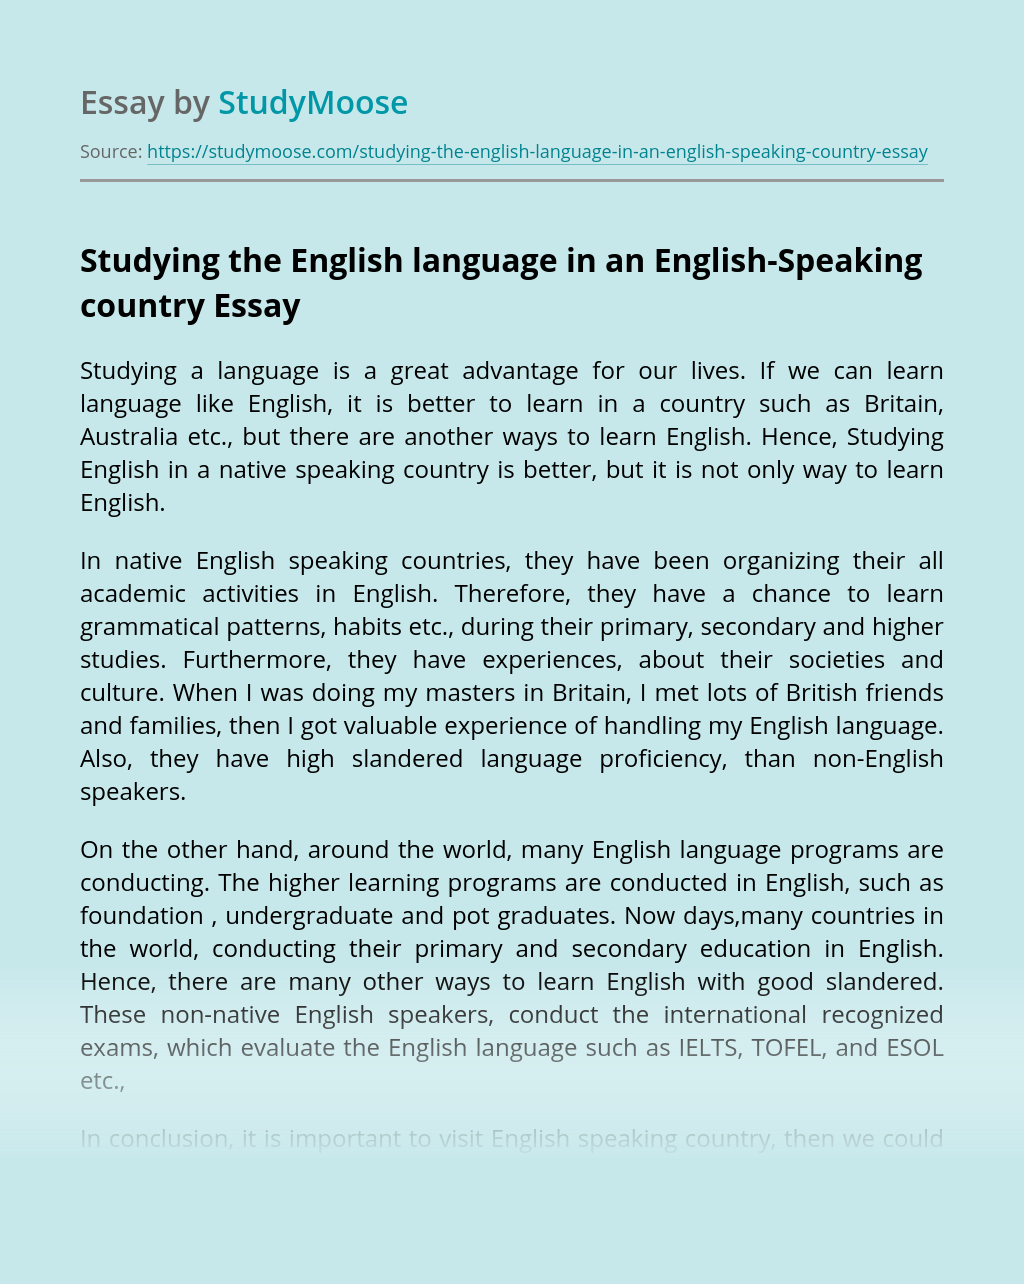 Studying the English language in an English-Speaking country